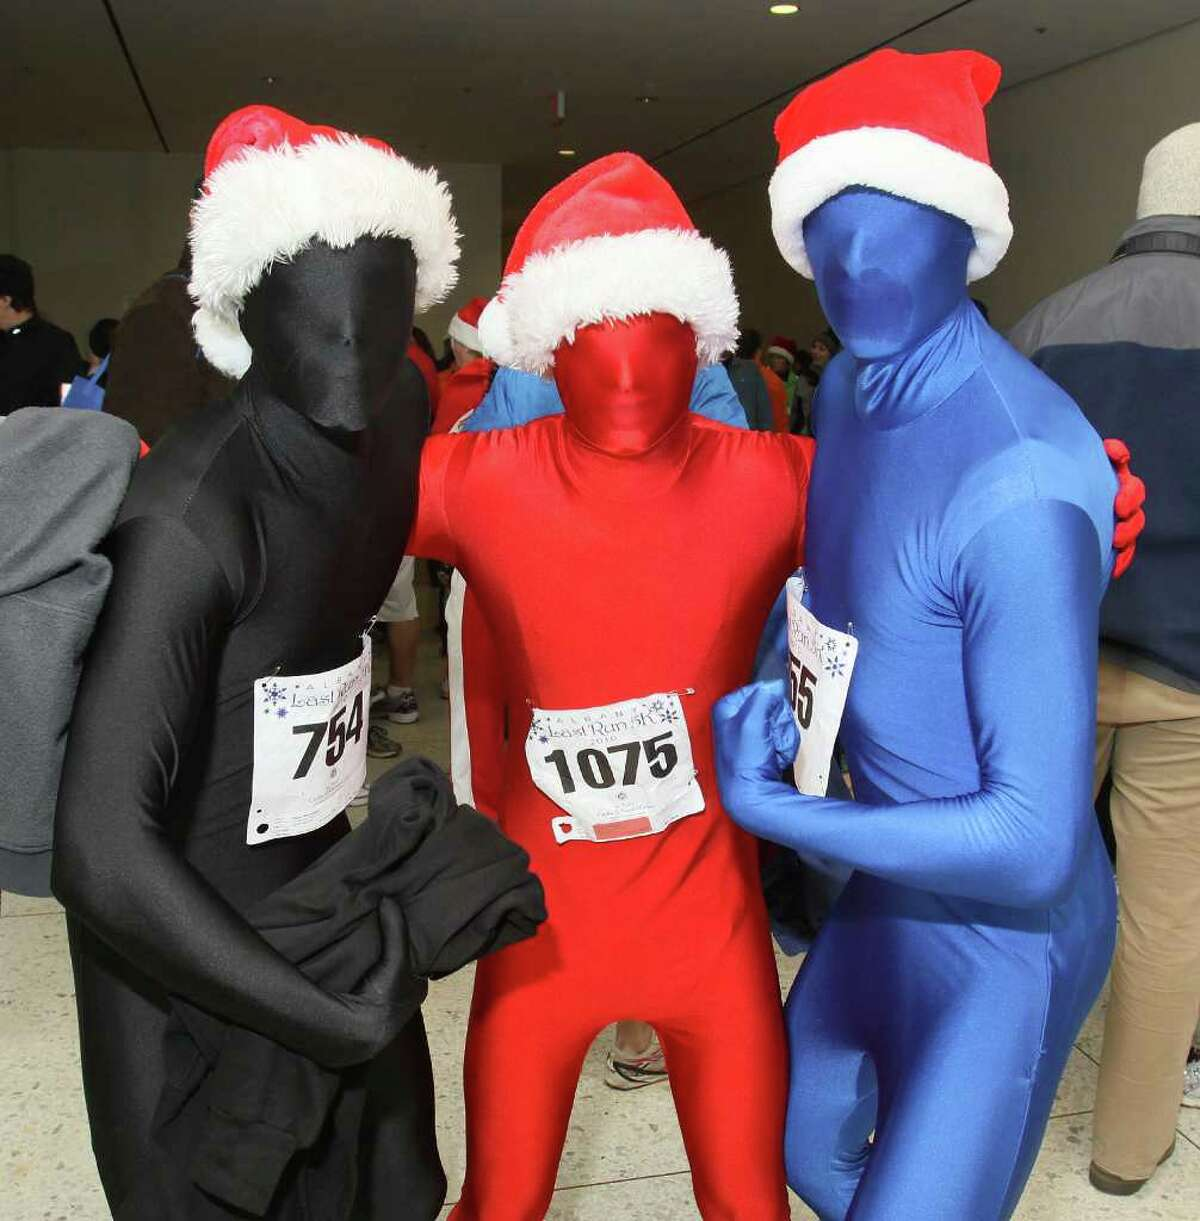 From left: Sean Reynolds, Ryan Bellinger and Connor Devine wear full-body suits and Santa hats to stay warm while running in Albany?s Last Run 5K. (Joe Putrock / Special to the Times Union)